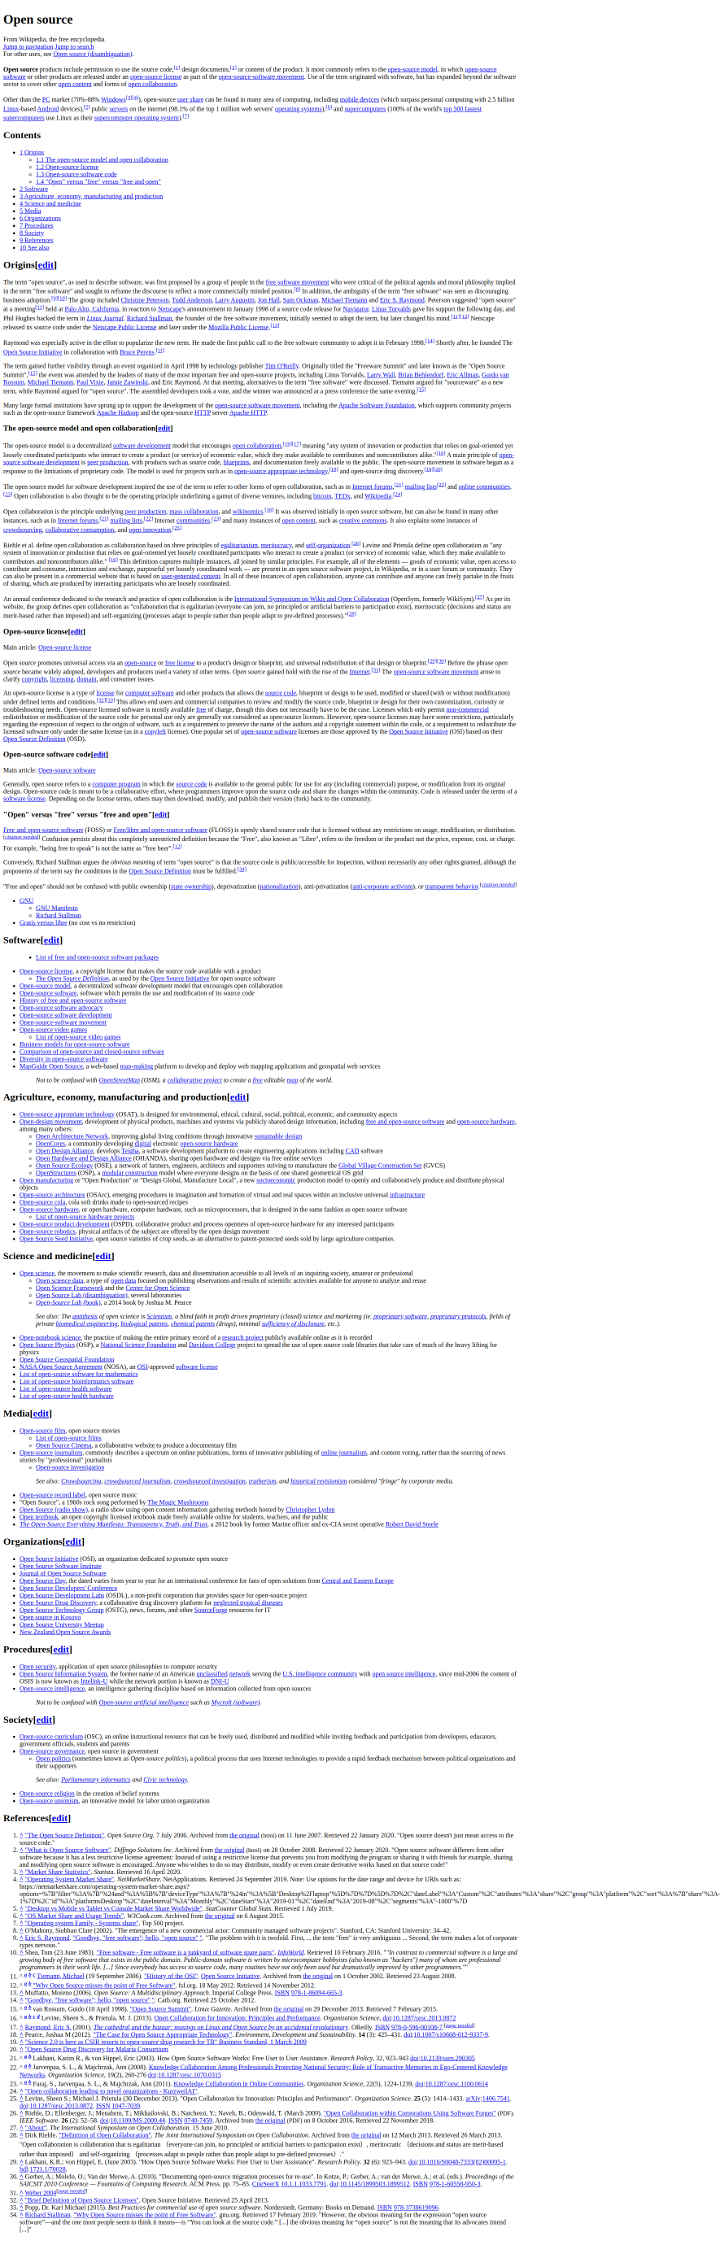 full page screenshot of a html-only version of wikipedia page